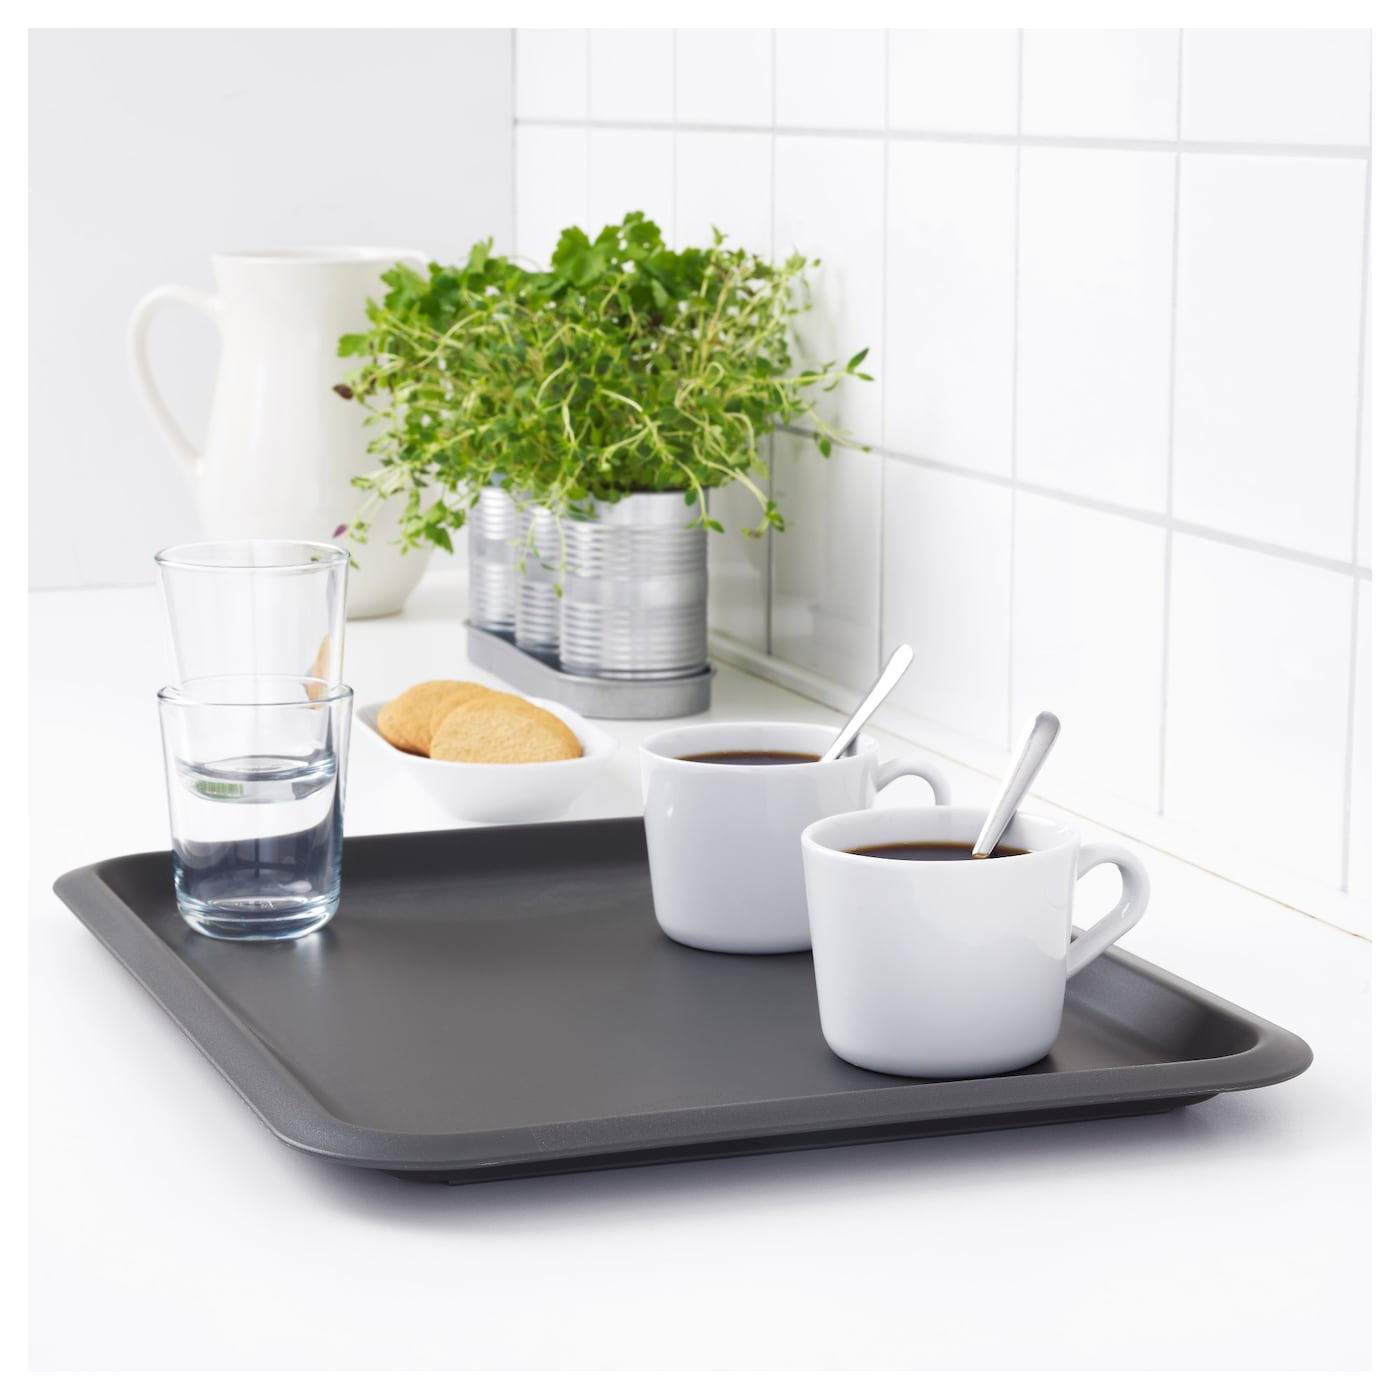 IKEA FUNGERA tray Dishwasher safe and therefore easy and convenient to clean.